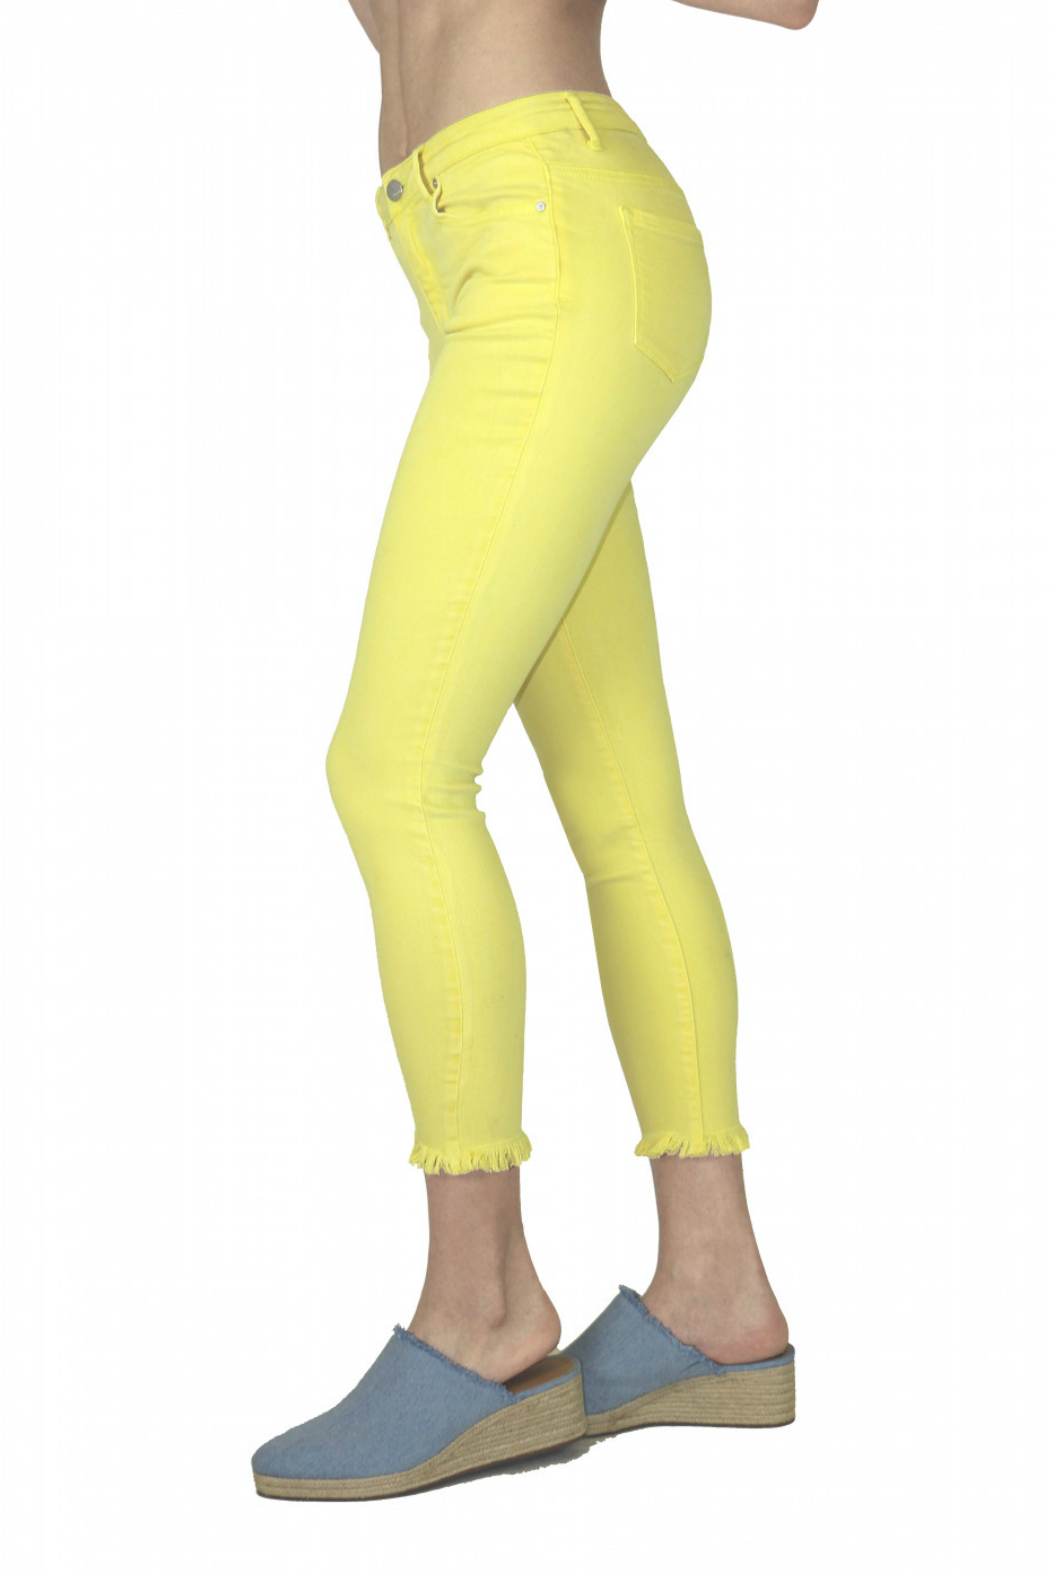 Tractr (New York Poplin) Lemon Zest Jeans - Front Full Image